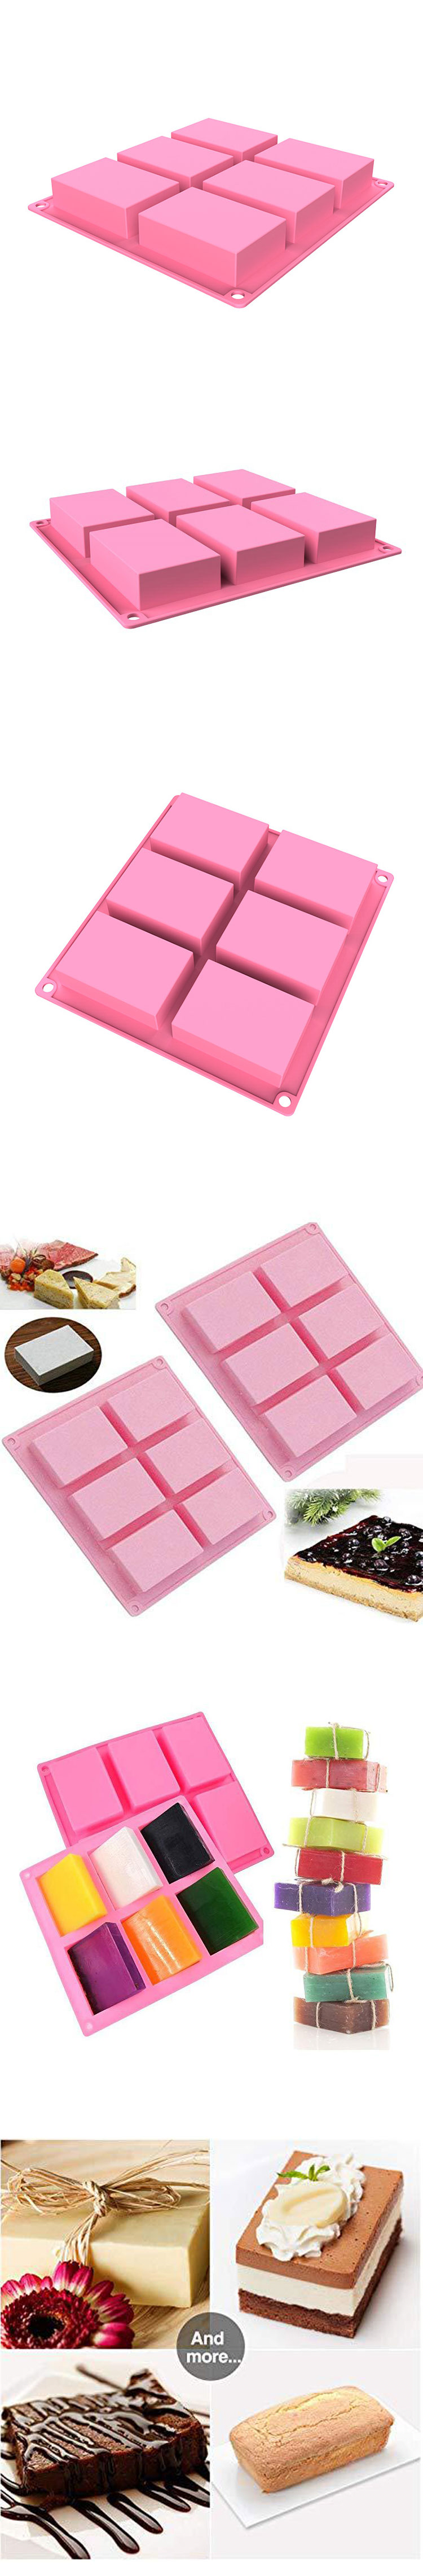 High quality design handmade large 6 cavity bar rectangle rectangular soap mould 6-cavity silicone soap mold